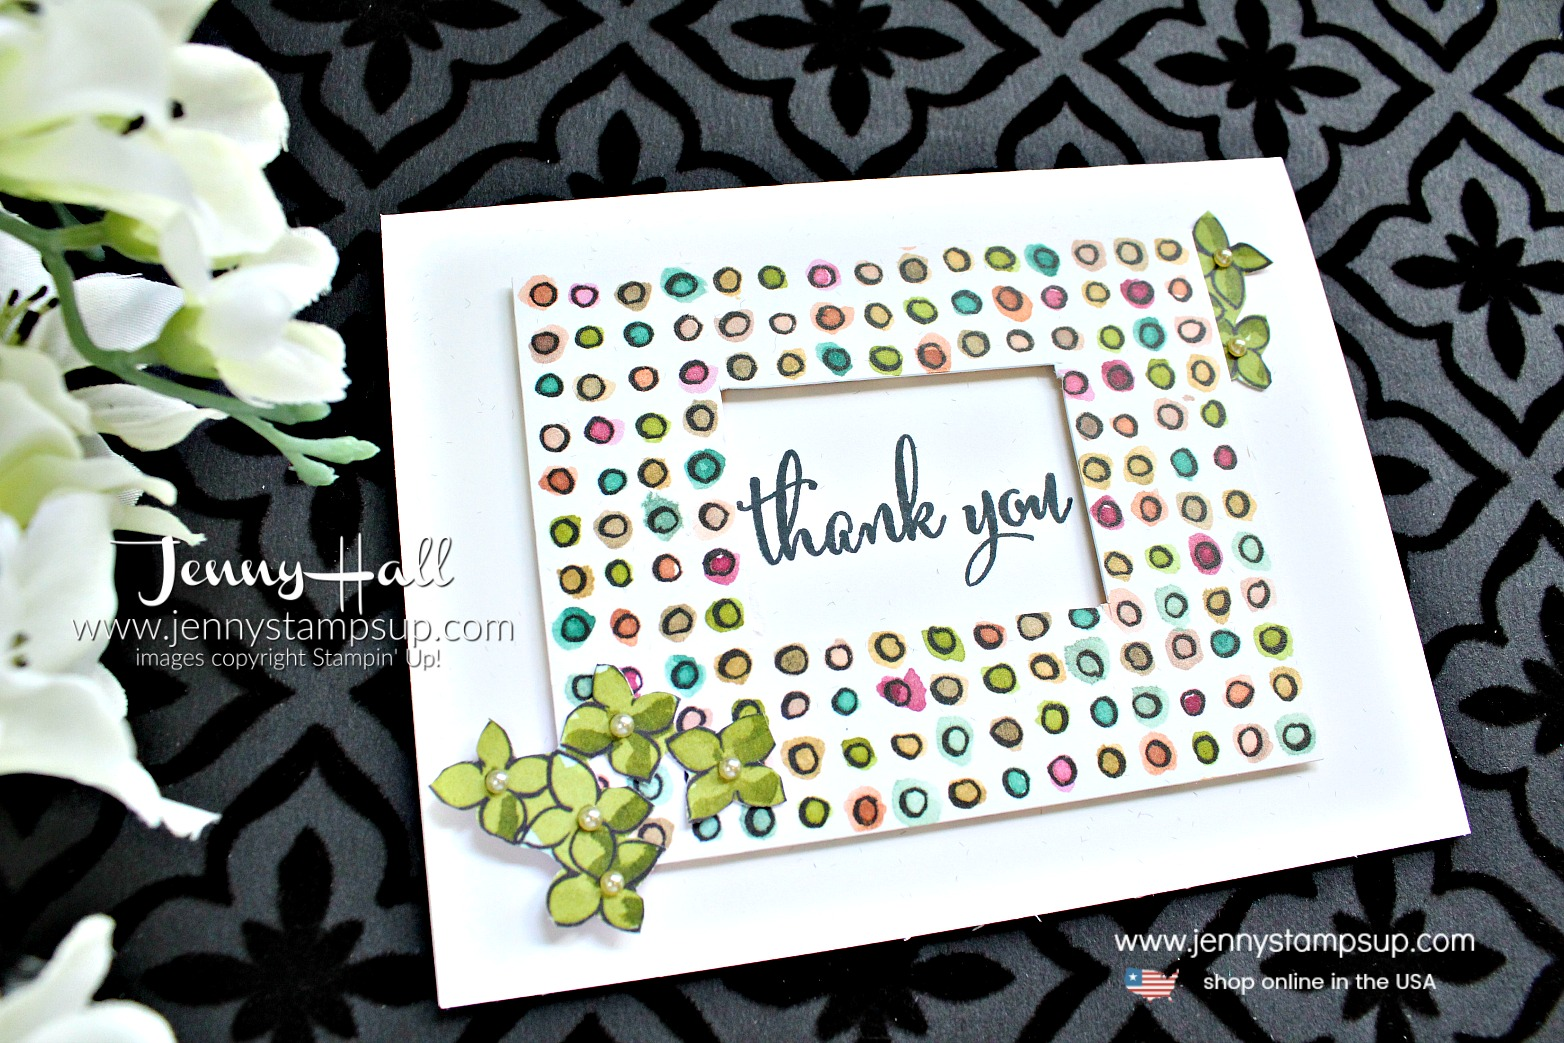 A thank you to Sara card created by Jennystampsup@gmail.com for #cardmaking #sharewhatyoulove #lovewhatyoudo #stampinup #statementoftheheart #thankyoucard #diy #papercrafts #stamping #lifestyle #craftsforkids #kidfriendly #CAScards #cleanandsimple #jennyhall #jennyhalldesign #jennyhallstampinup #jennystampsup #diy